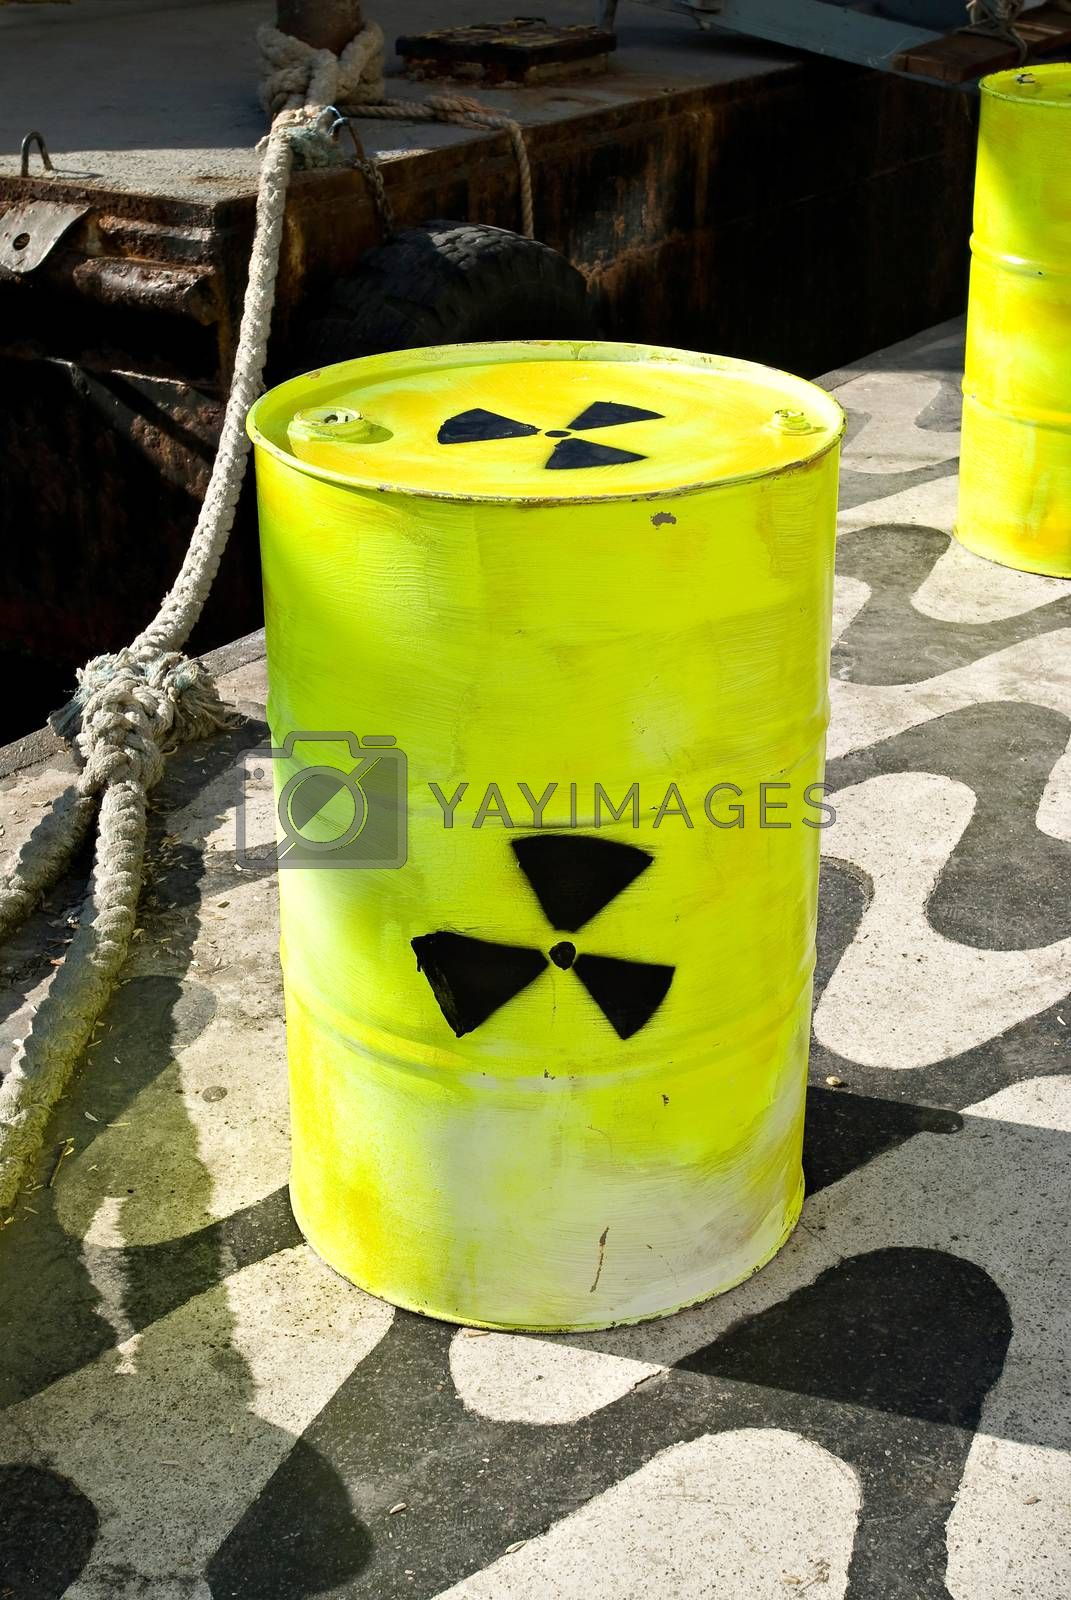 Royalty free image of Barrel with radioactive symbol by emirkoo